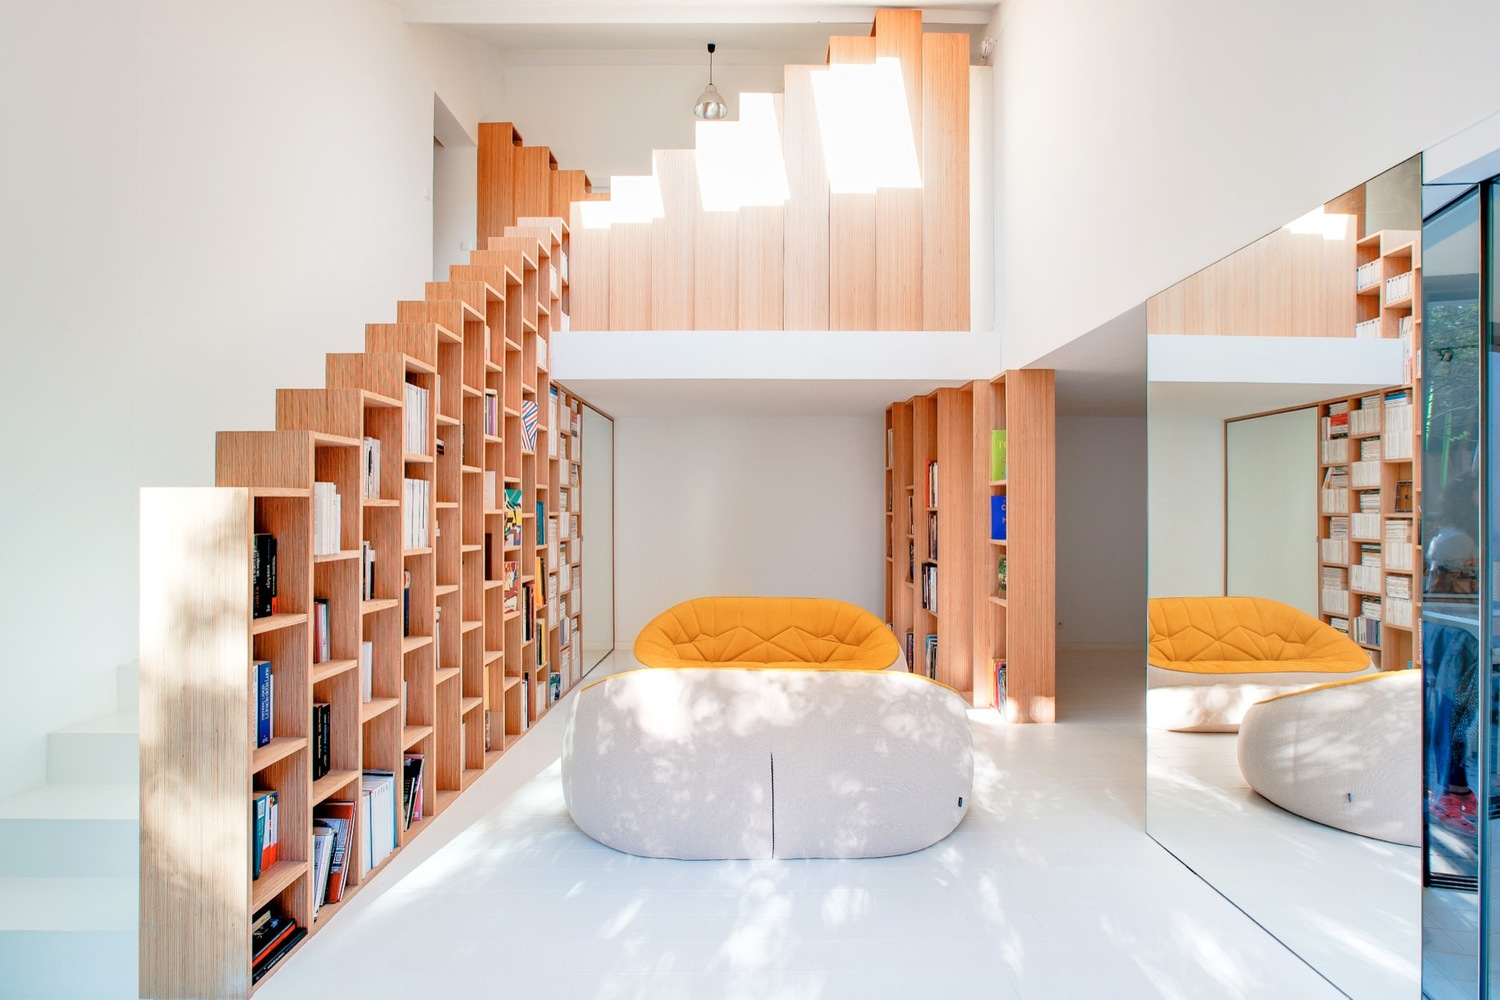 Delicieux Bookshelf House,Courtesy Of Andrea Mosca